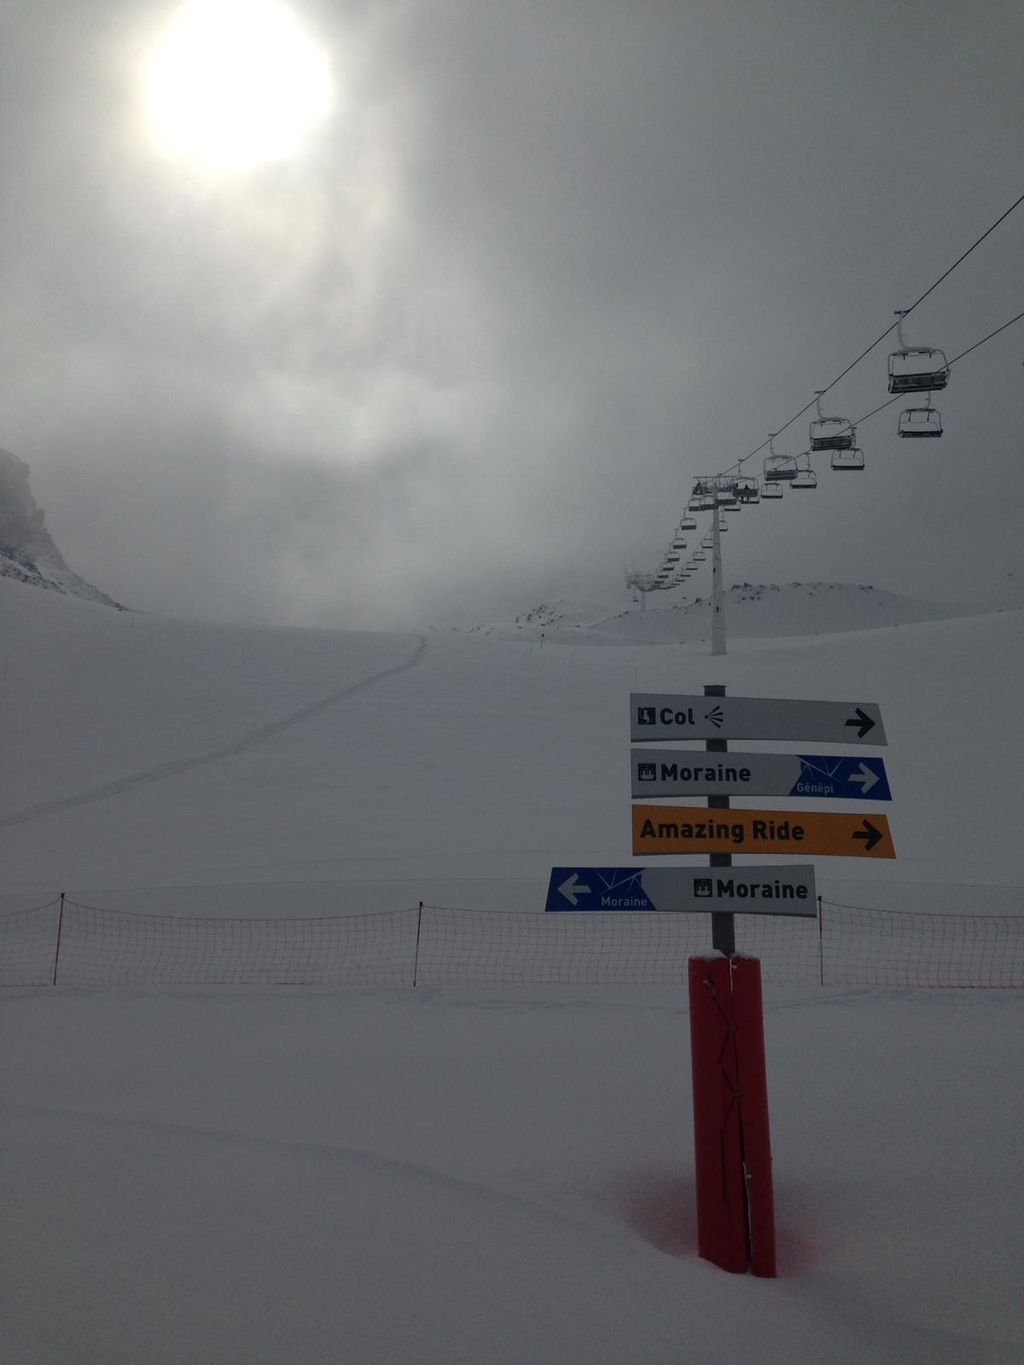 https://cdn.wintersport.nl/forum/24/065b81e309fe4ebf511a2a2d...